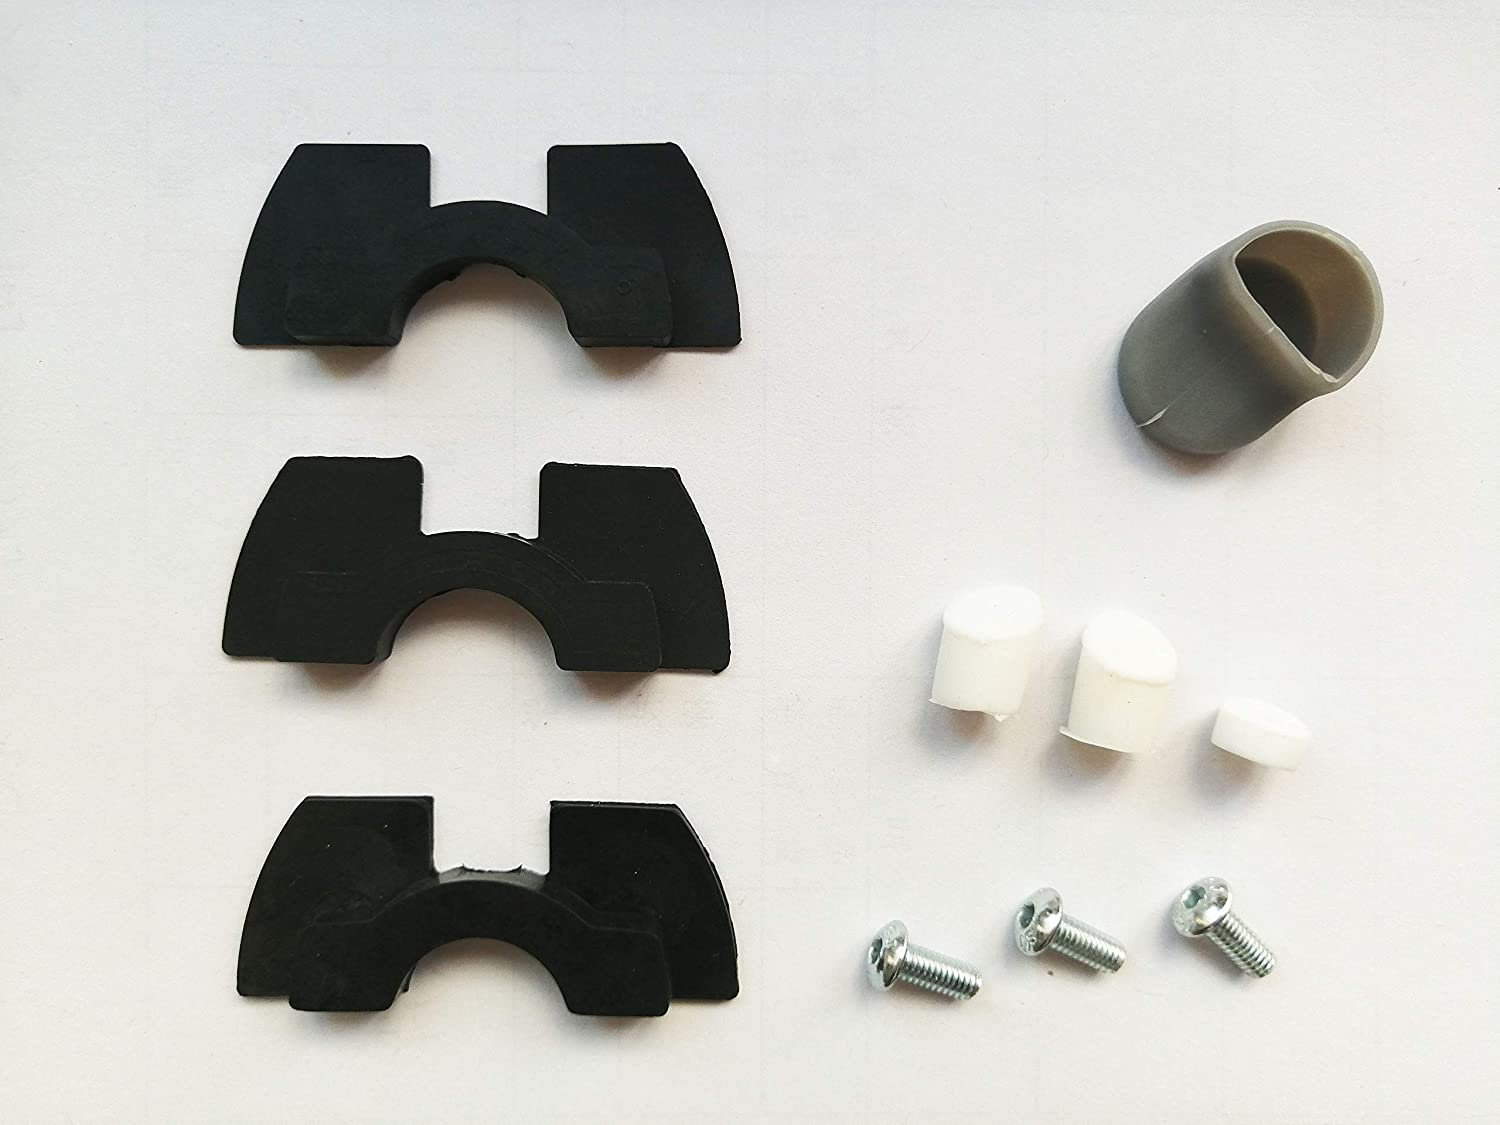 SPEDWHEL Accessories Pack for Xiaomi MiJia M365 and Xiaomi Pro Electric Scooter - Includes Vibration Dampeners (3 Sizes), Rear Mudguard Rubber Plugs ...